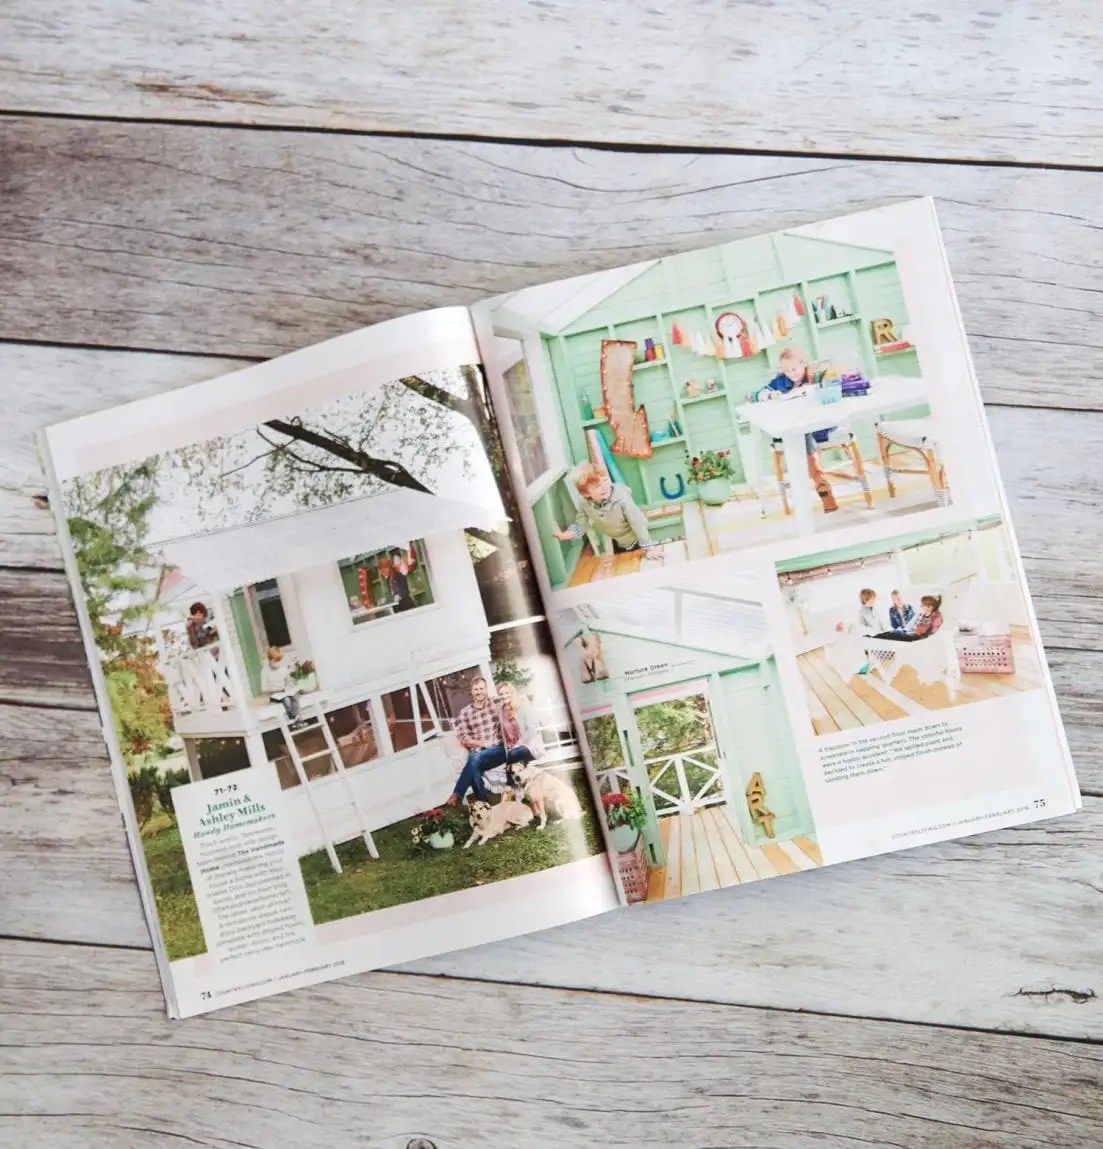 country living's creativity issue - inside article - The Handmade Home